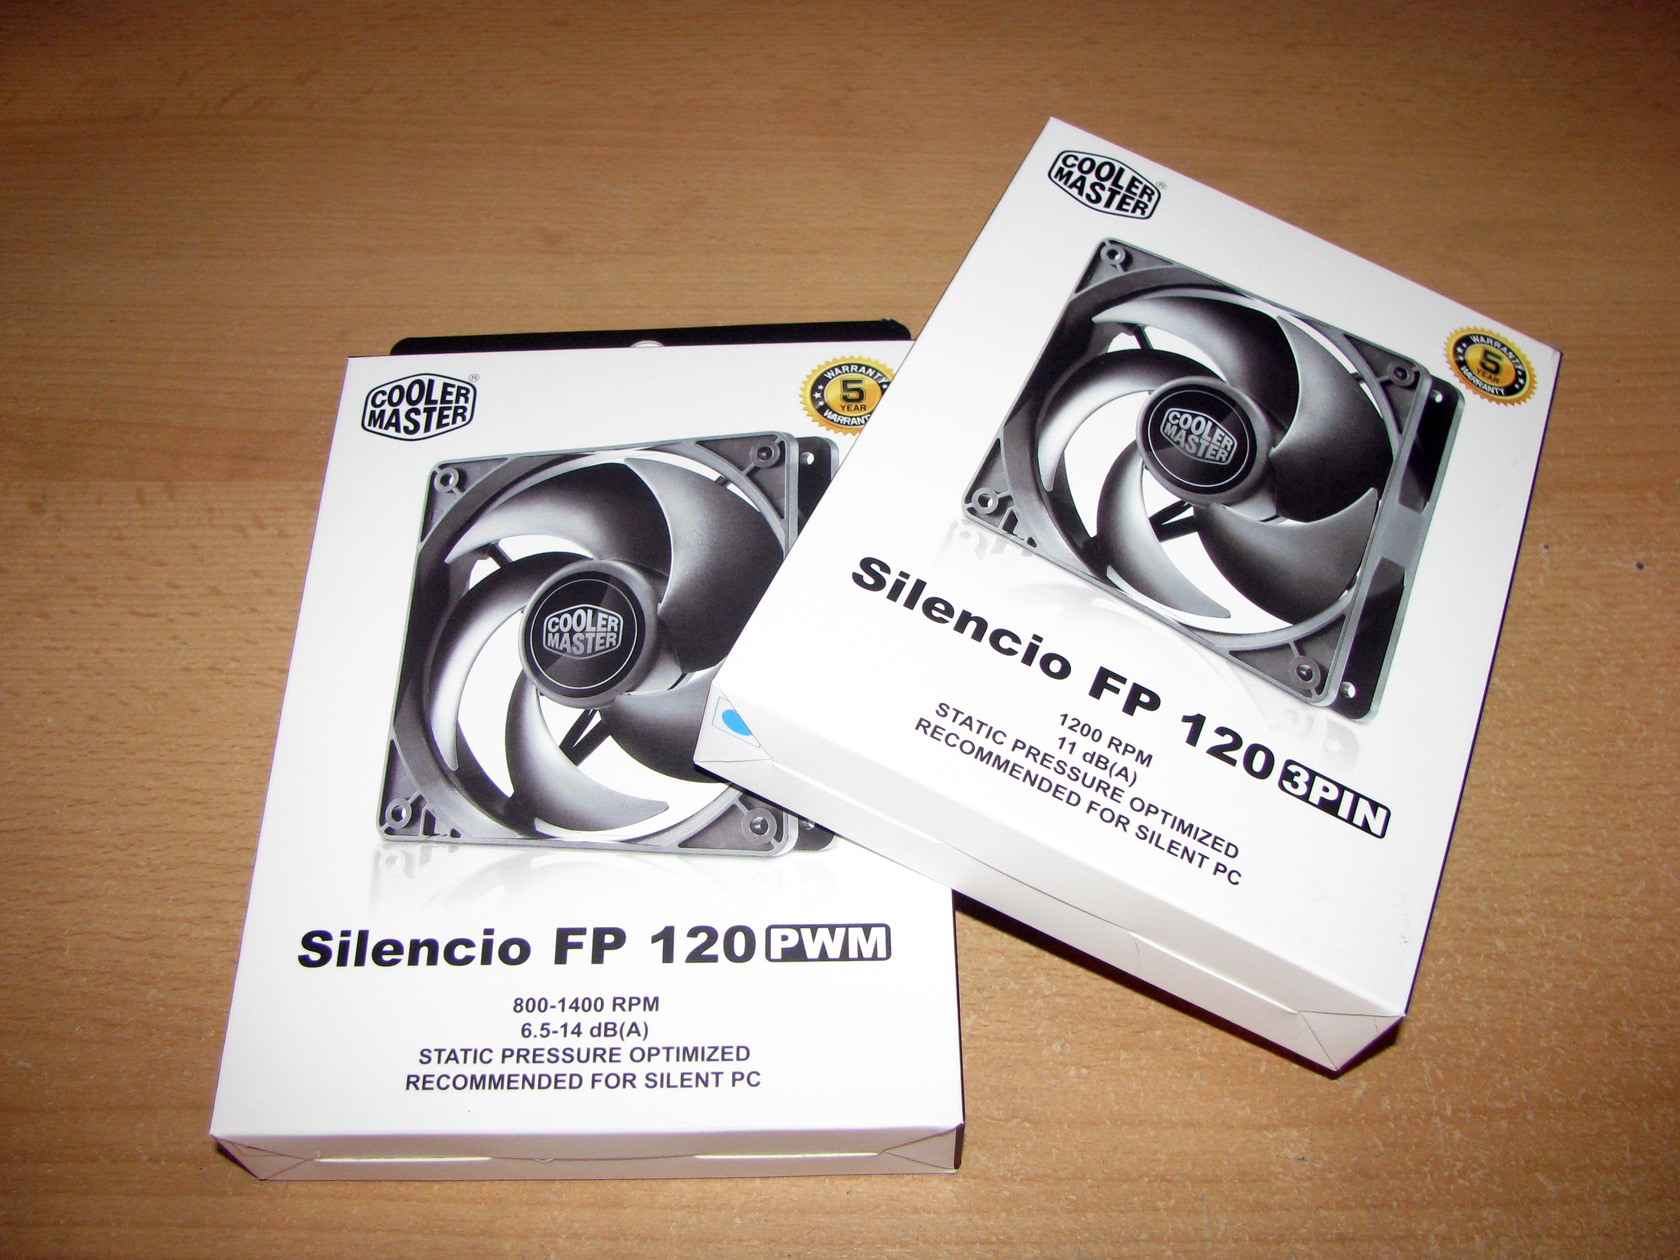 Cooler Master Silencio FP 120 3pin and FP 120 PWM – Test and Review